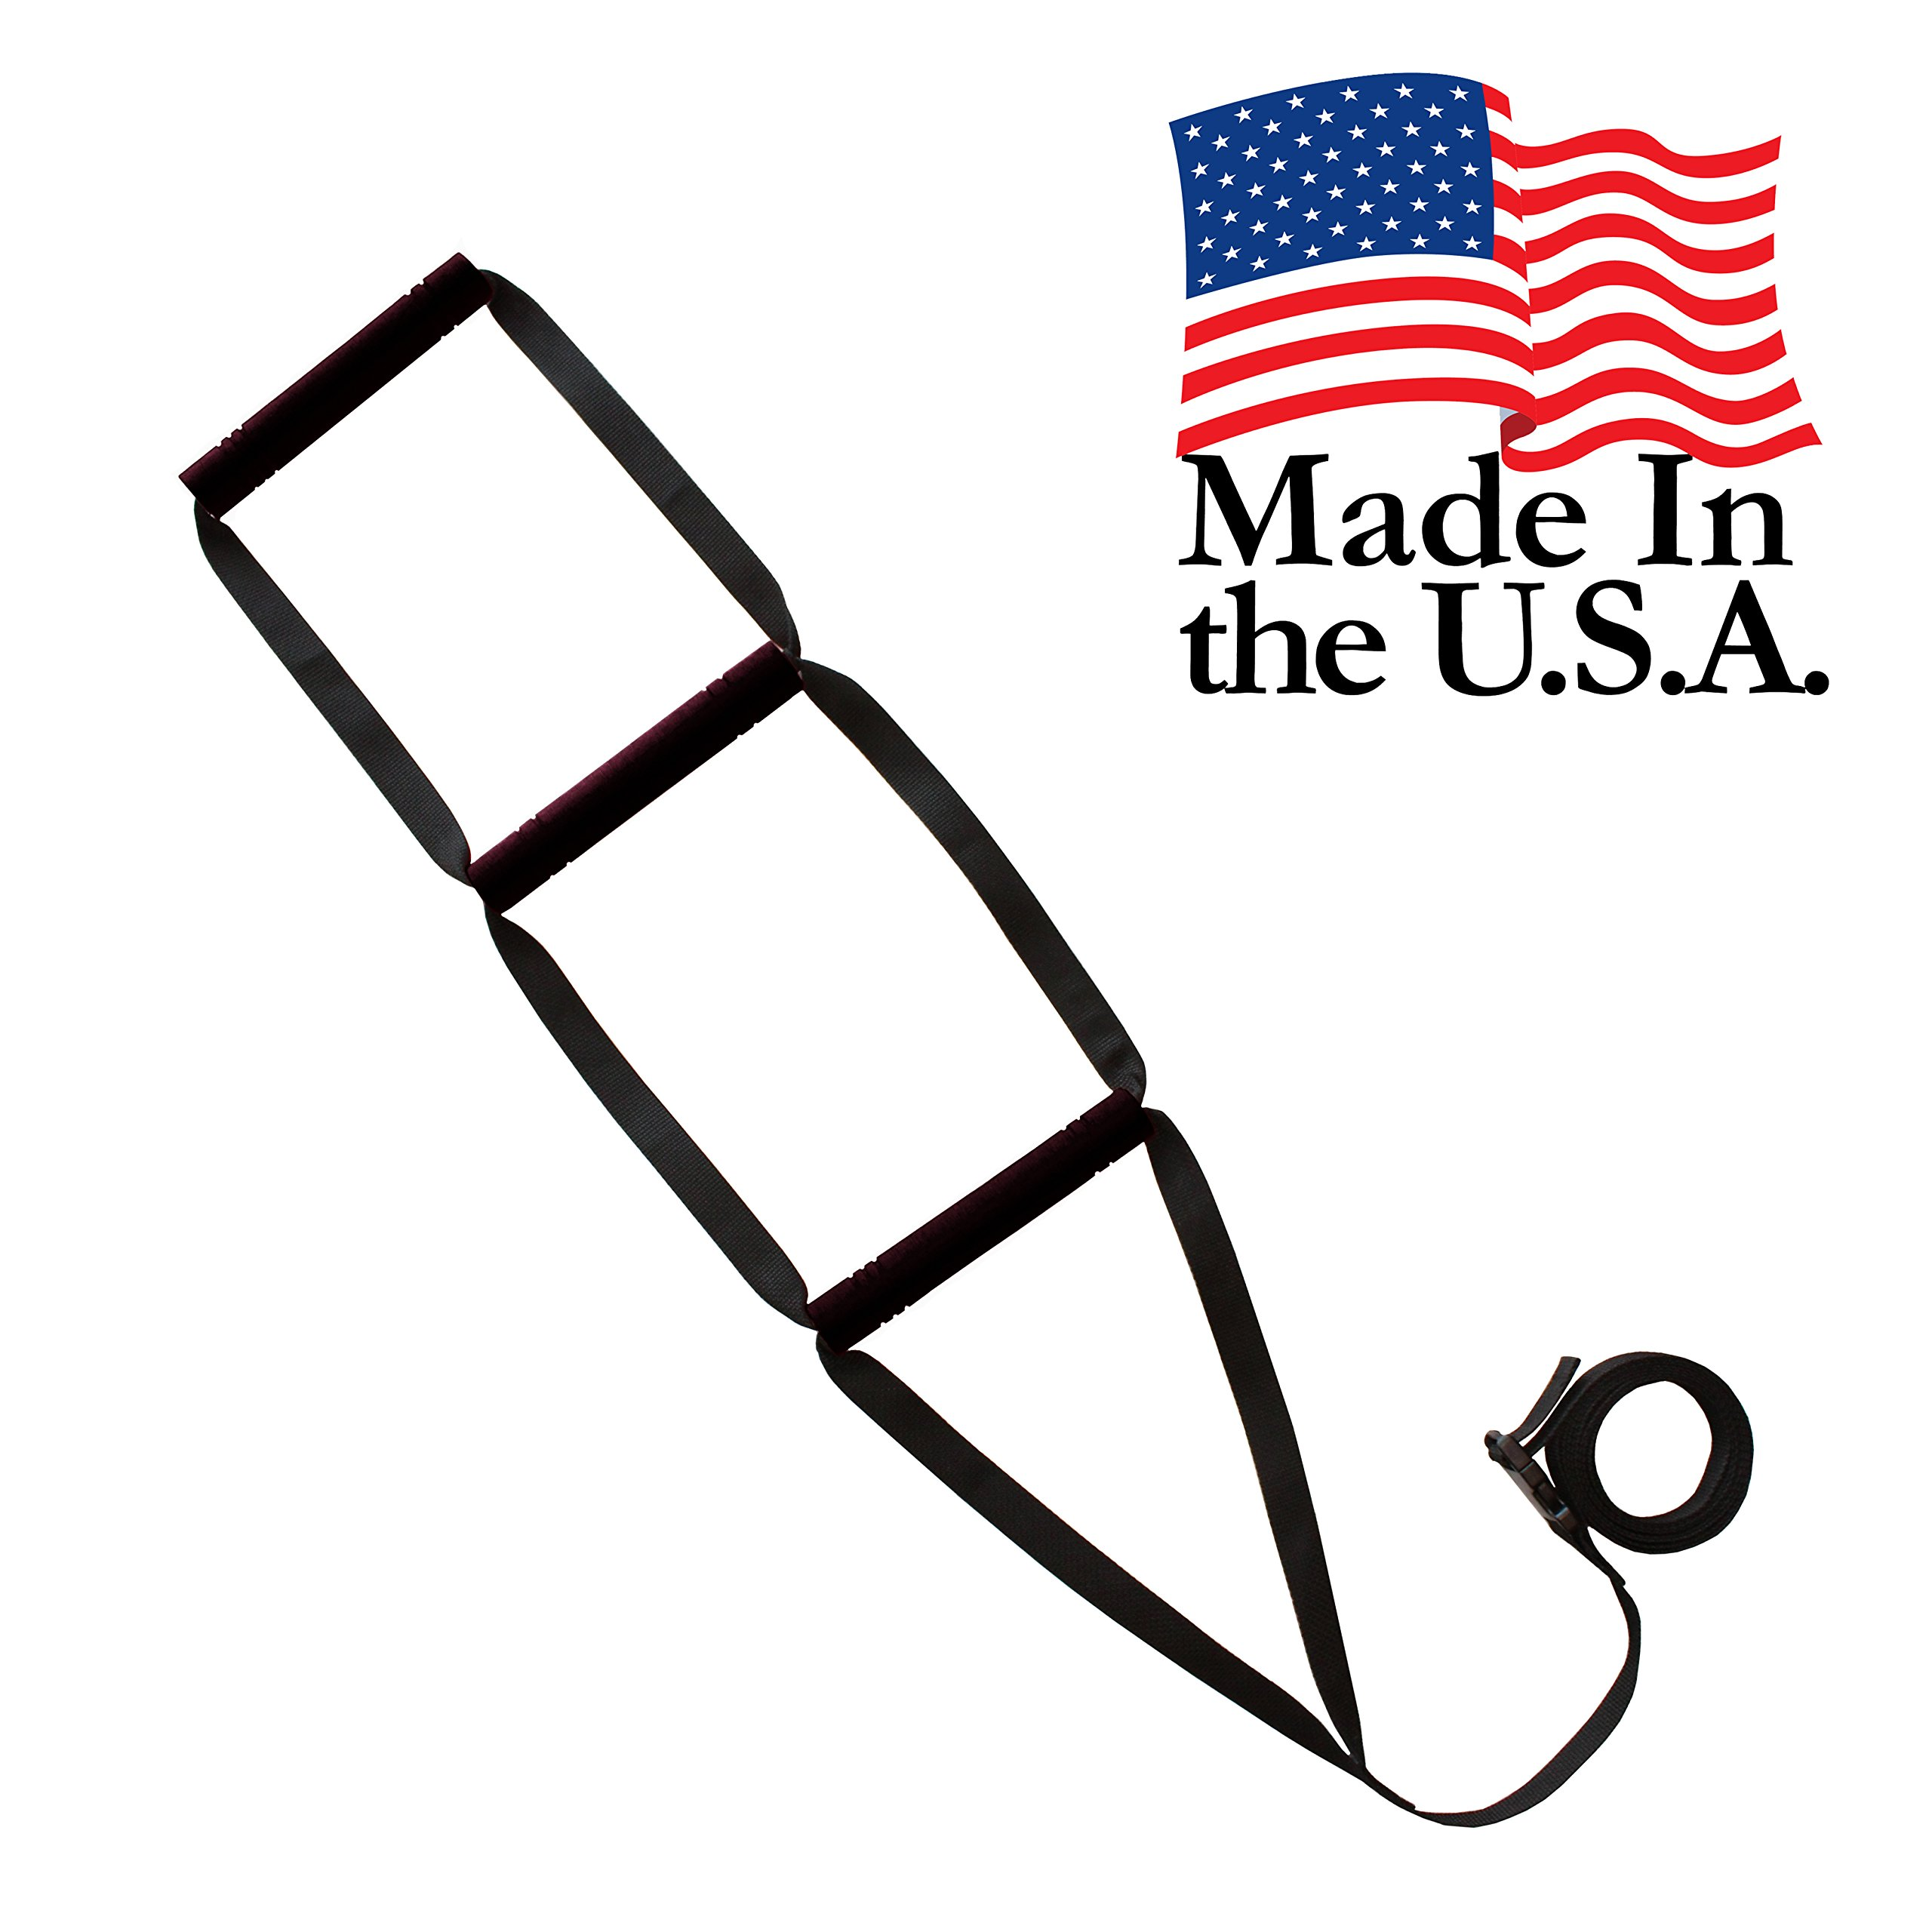 Bed Ladder Assist - Sit-Up Bed Assist Handle - Rope Ladder for Sitting Up In Bed - Pull Up Hoist for Elderly, Senior, Injury Recovery Patients and Pregnant Women - 3 Wide Padded Hand Grips (Black)